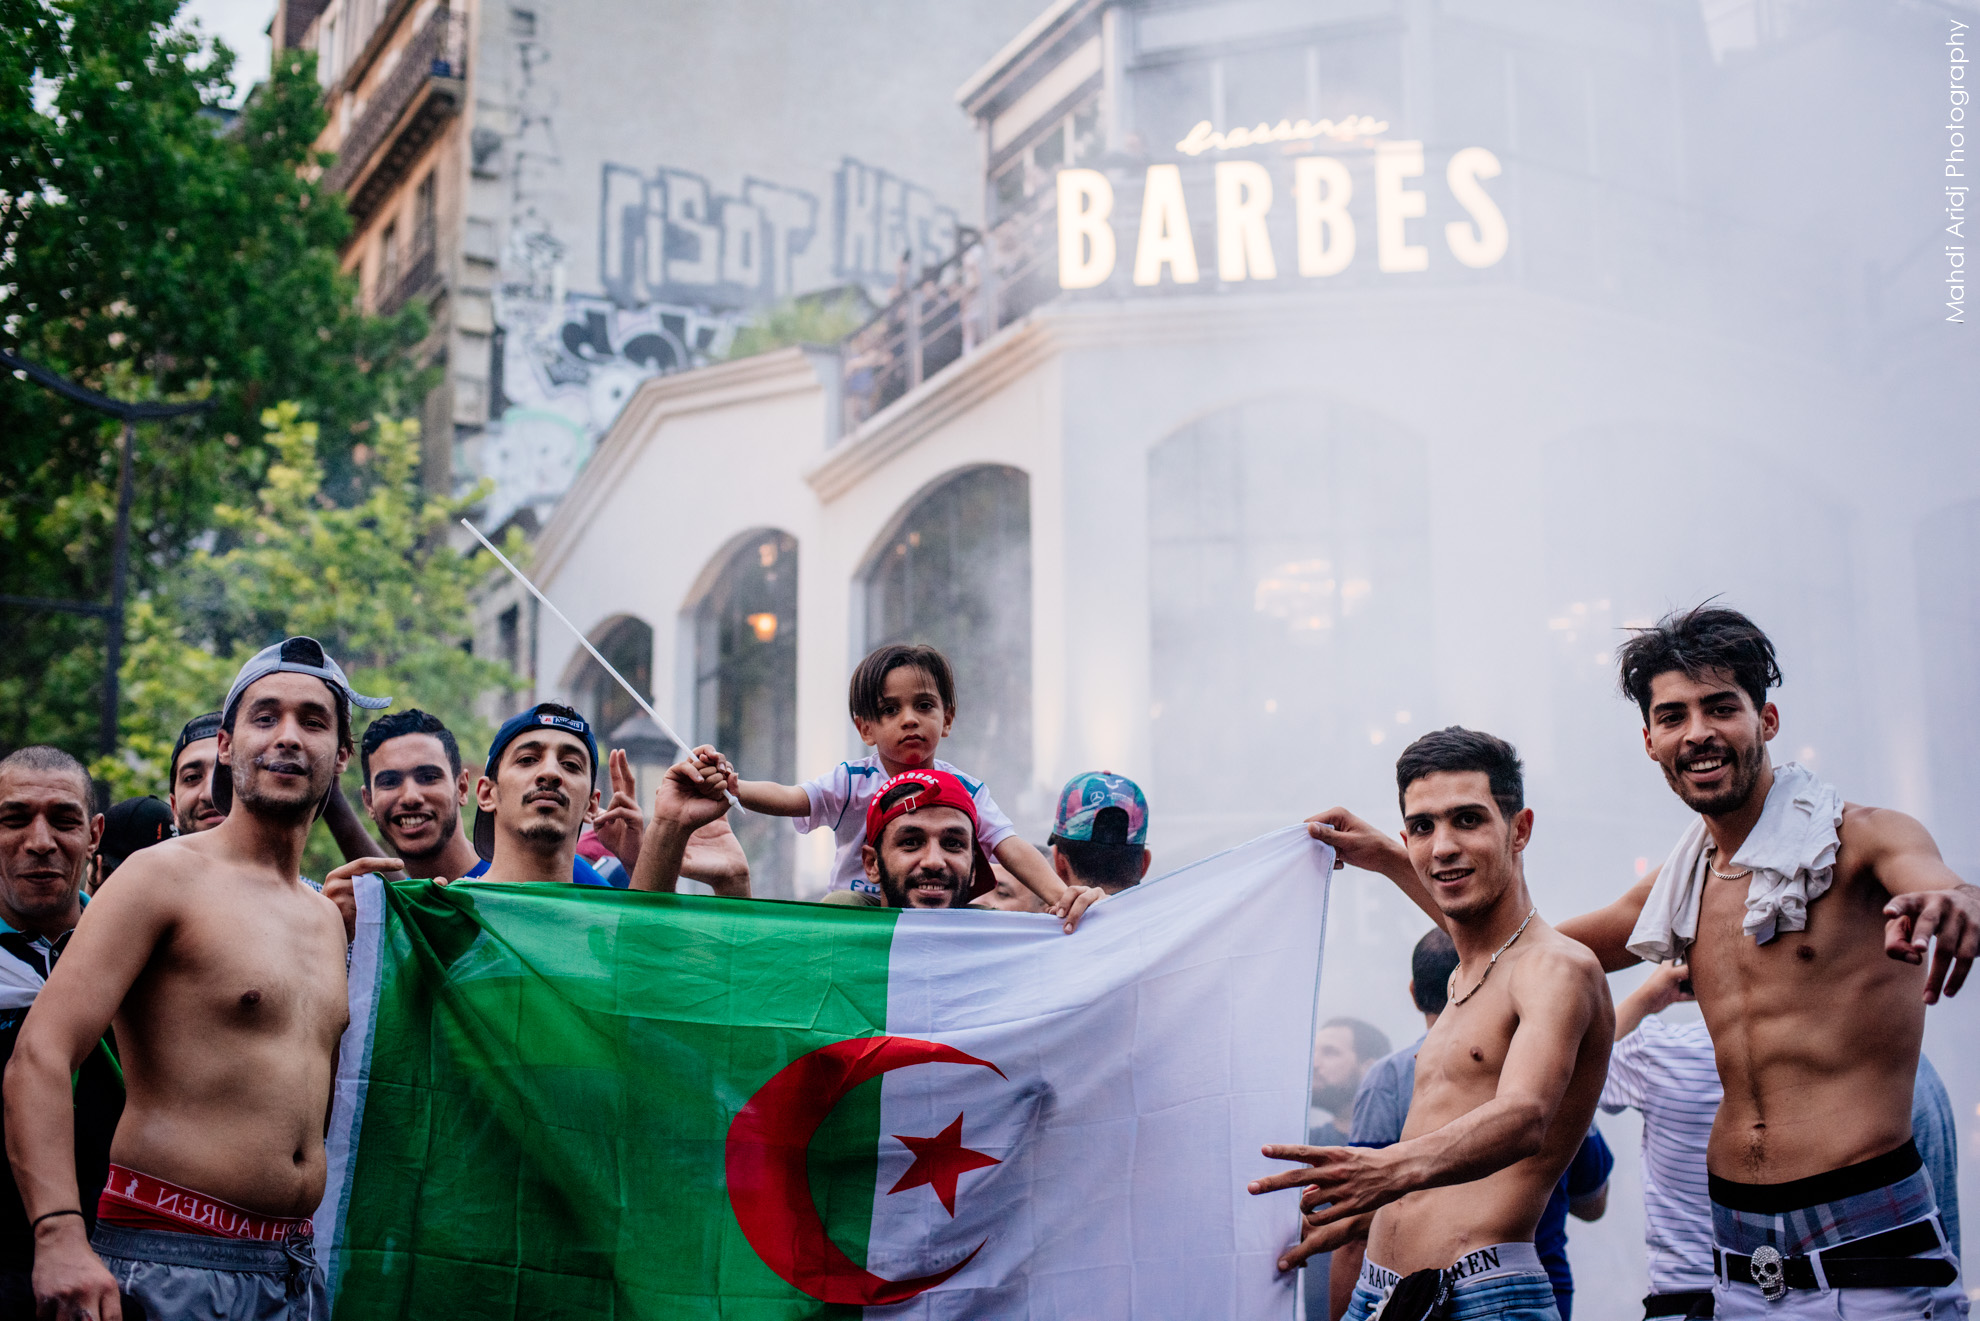 Quand les fennecs font vibrer Barbès - Barbes shivers for the Fennecs - CAN2019